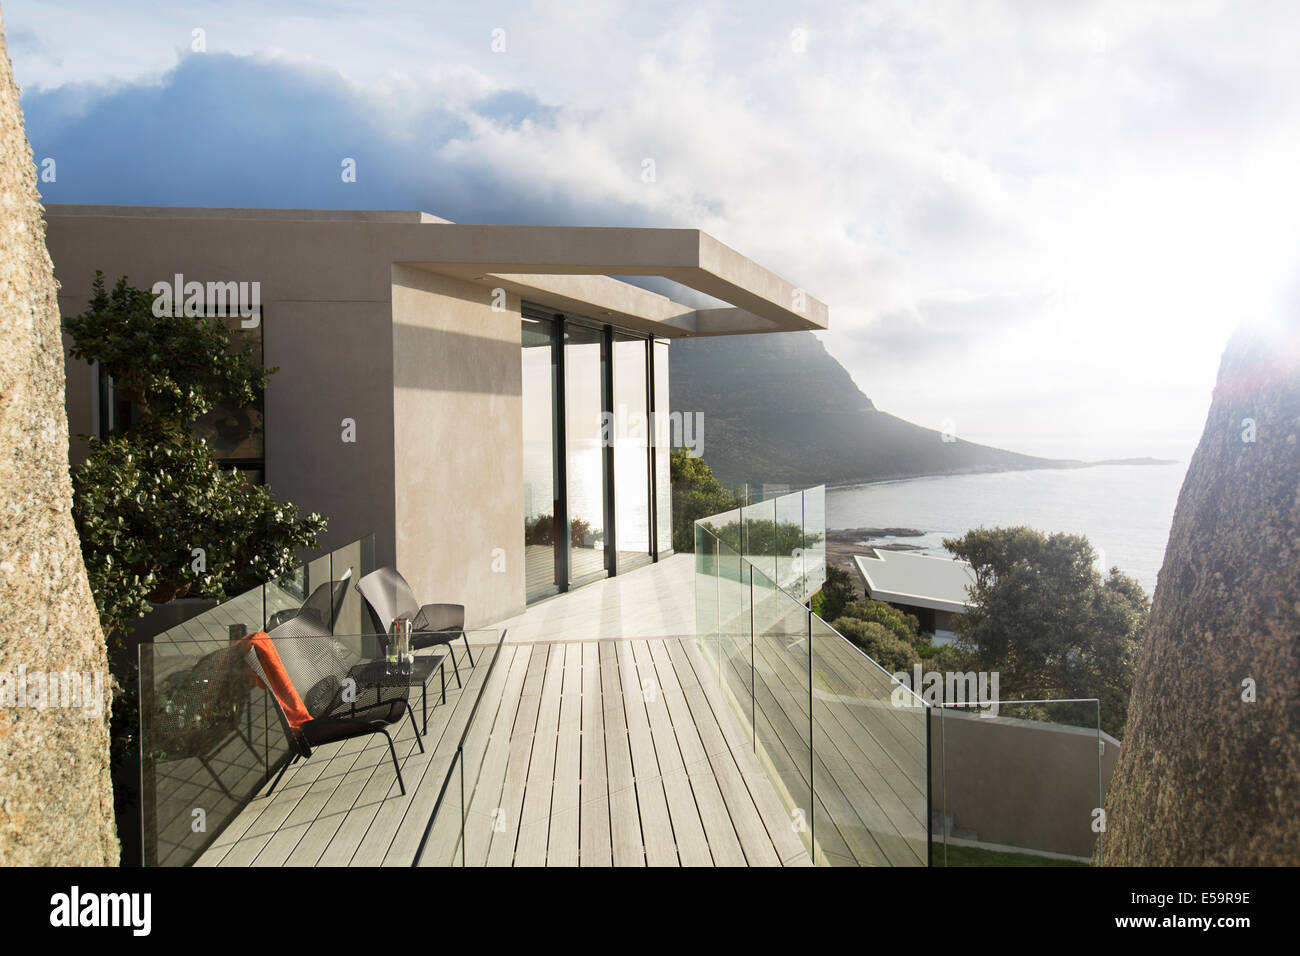 Balcon en bois de maison moderne Photo Stock